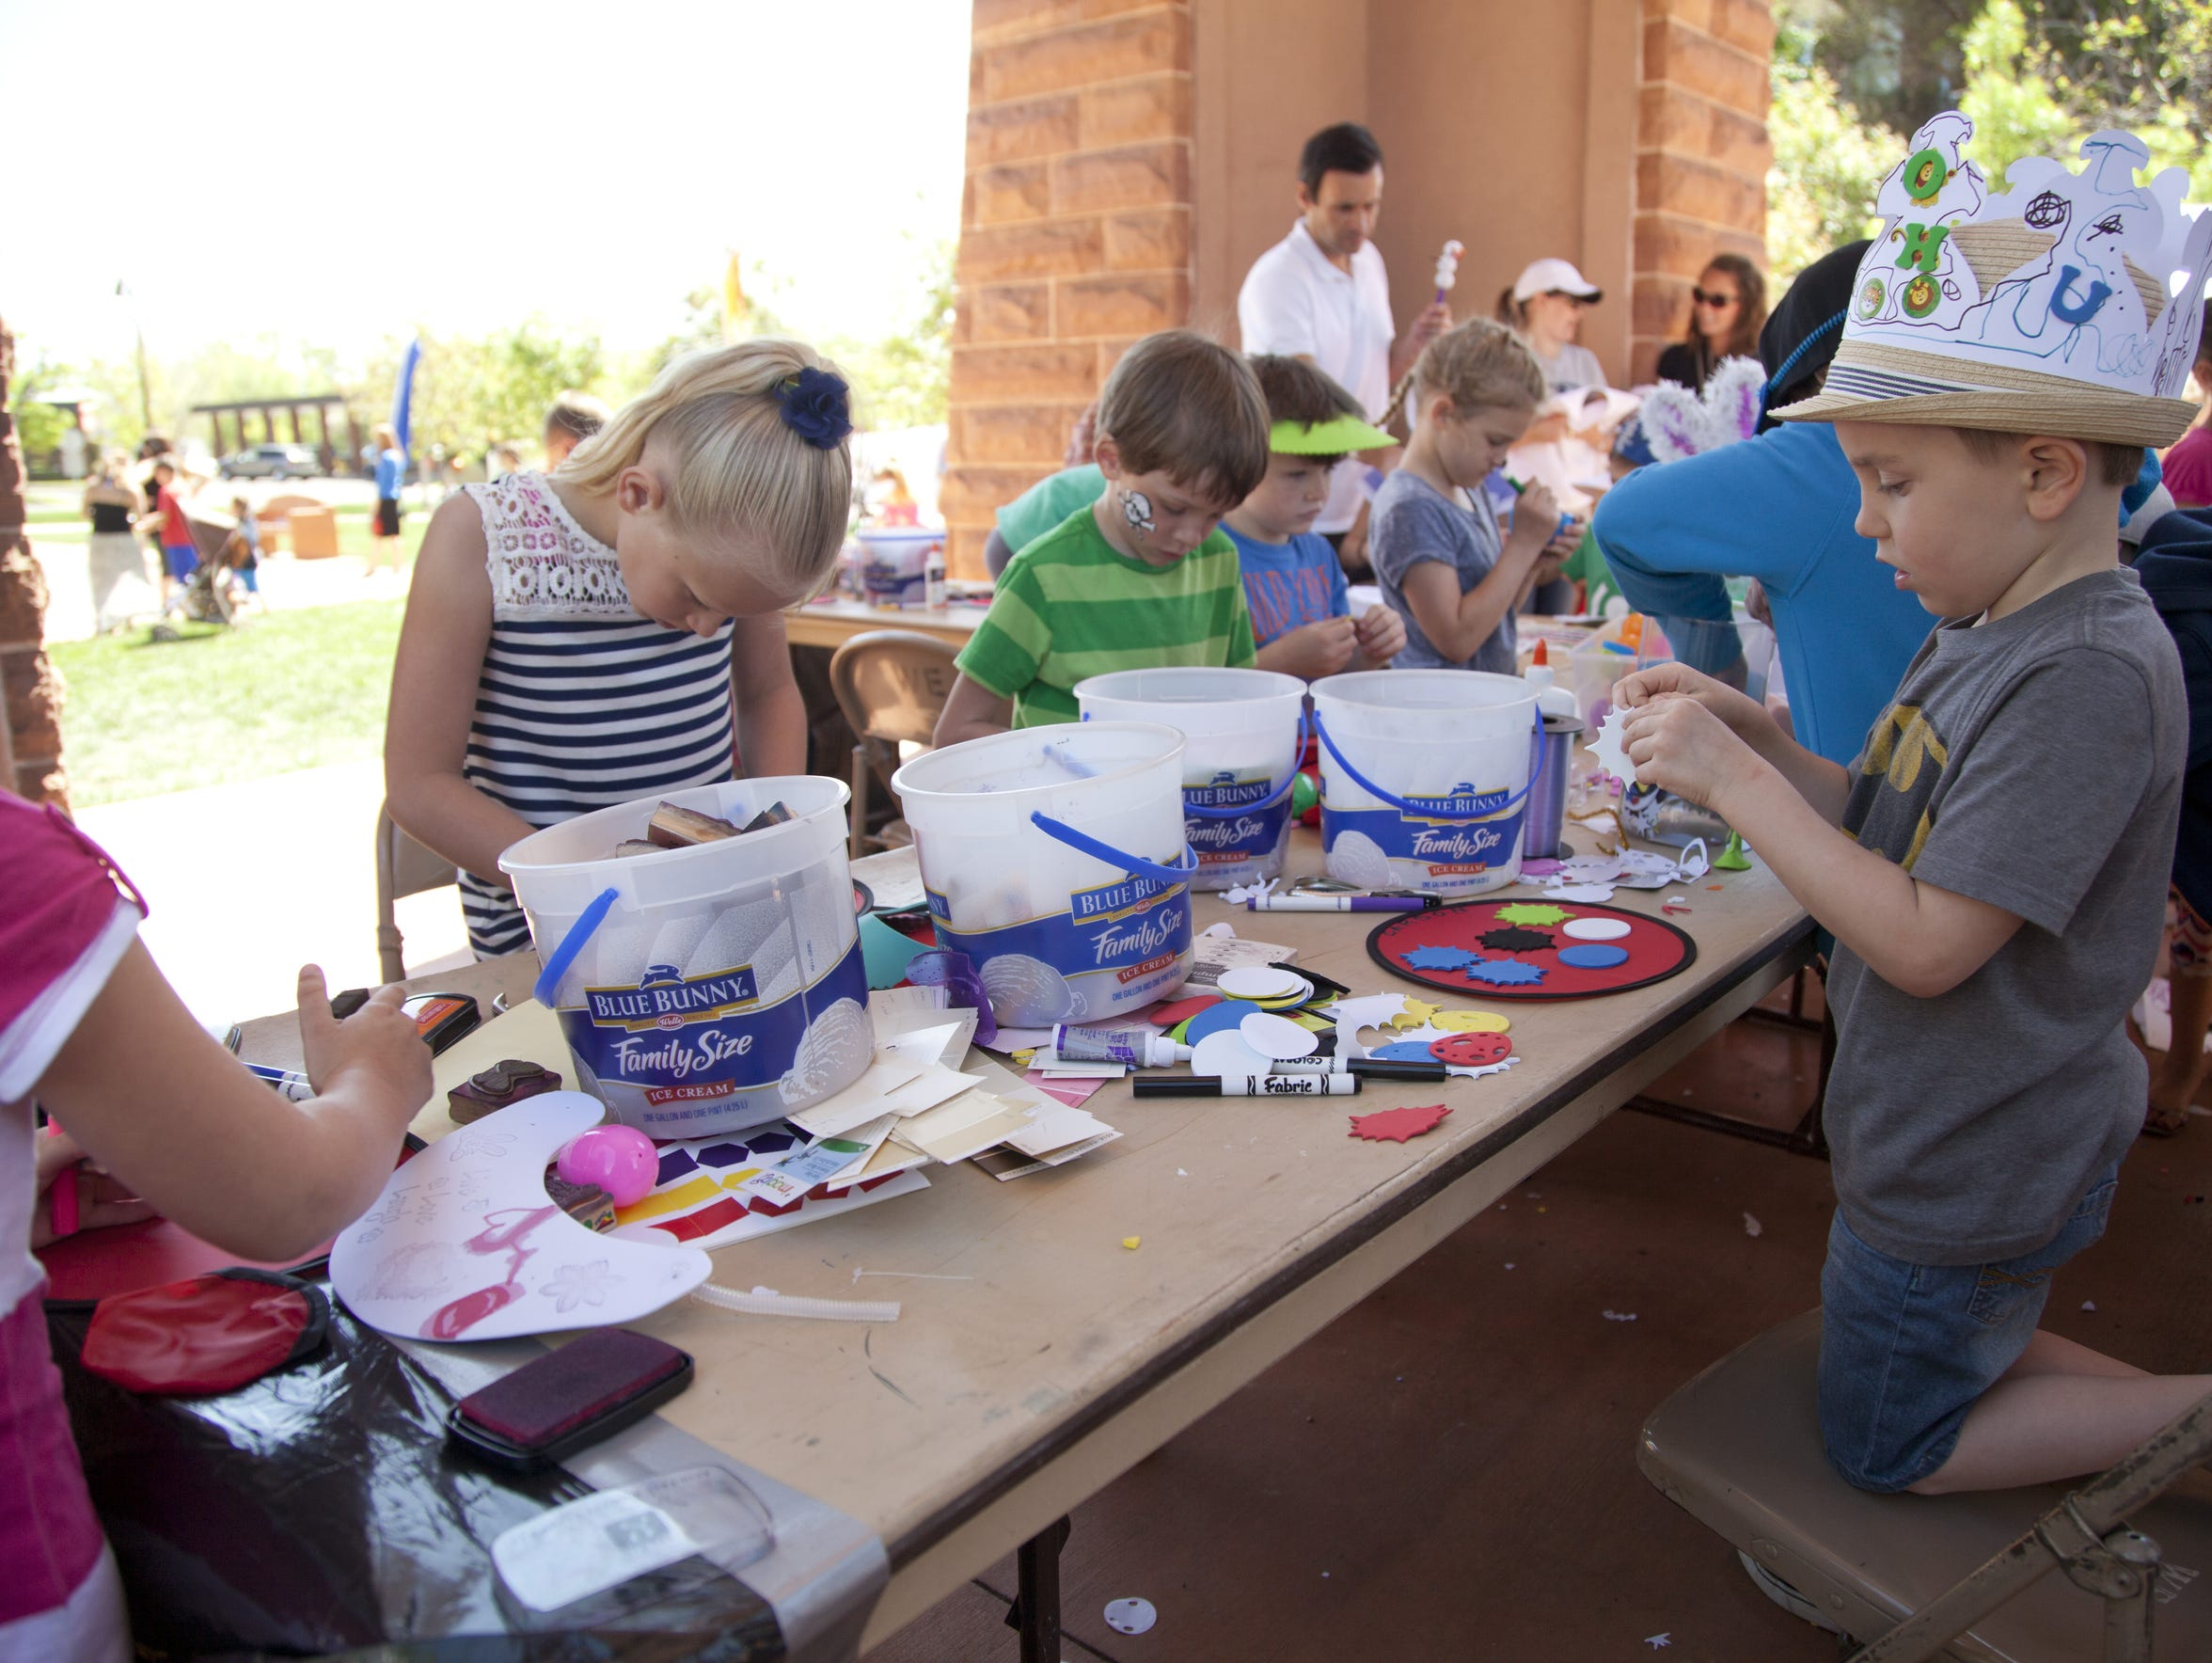 Kids participate in a variety of hands-on projects